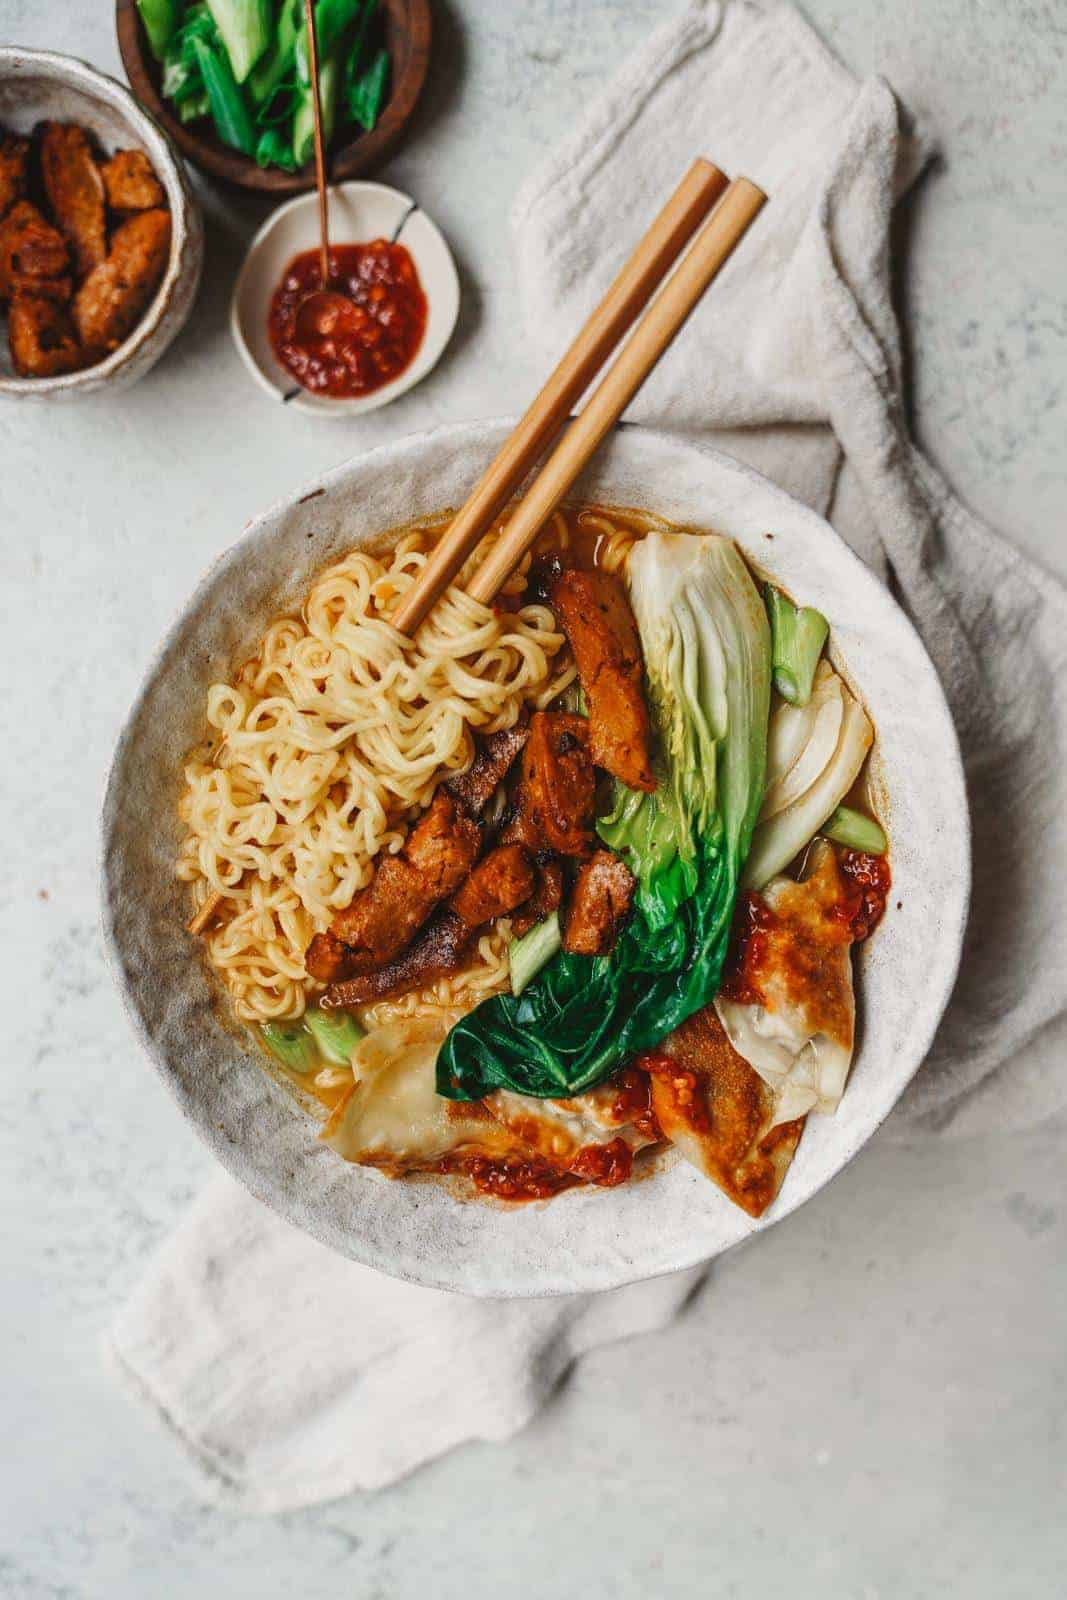 Creamy vegan ramen sitting on countertop with chopsticks bursting with colour from the toppings